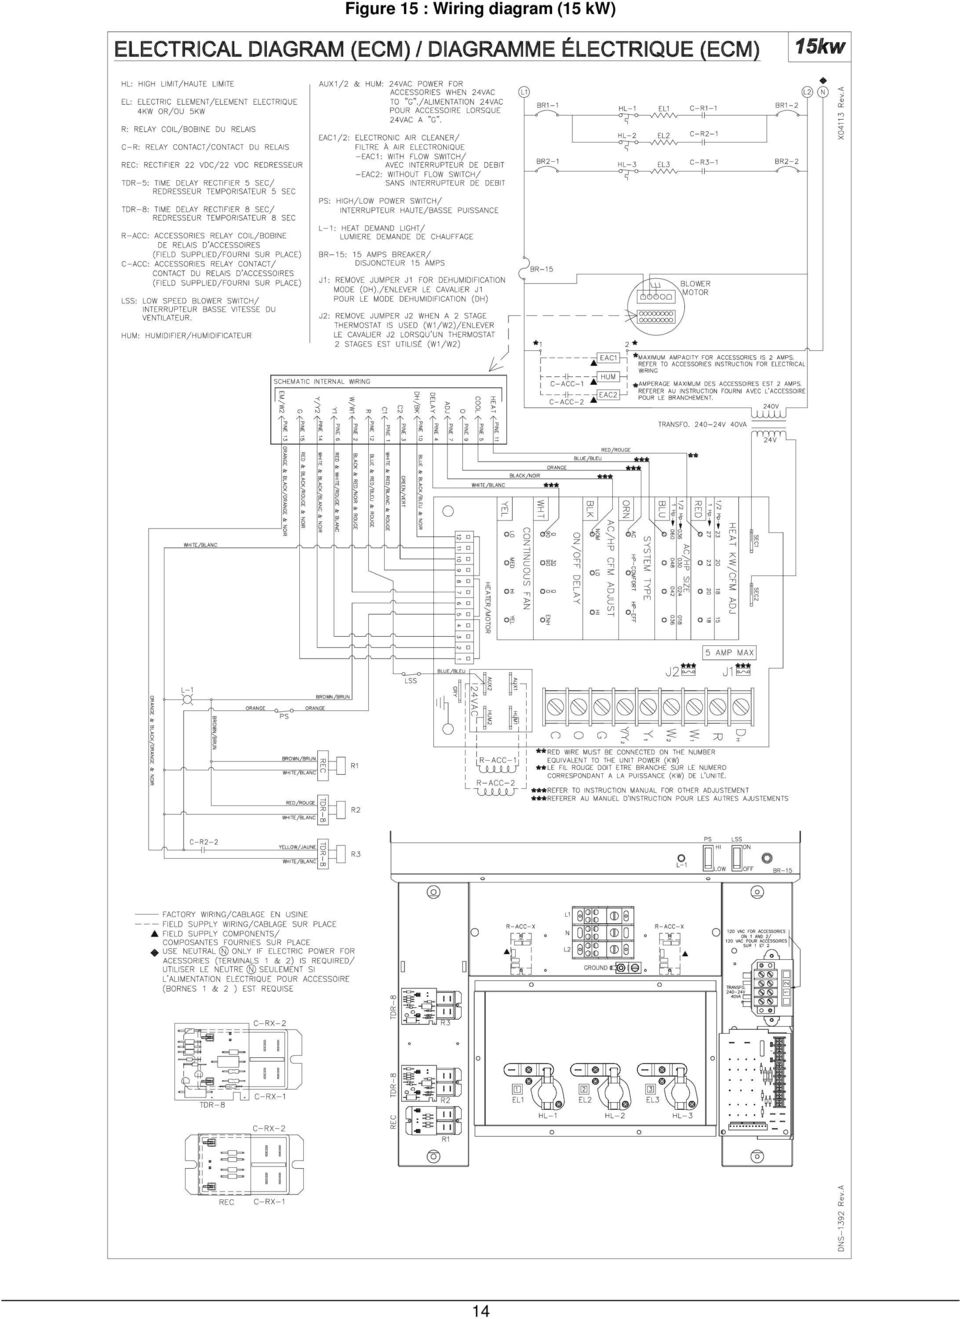 Multi Position Variable Speed Blower Motor Ecm Sup15 E230v1 Sup18 18 Kw Wiring Diagram 15 Figure 16 20